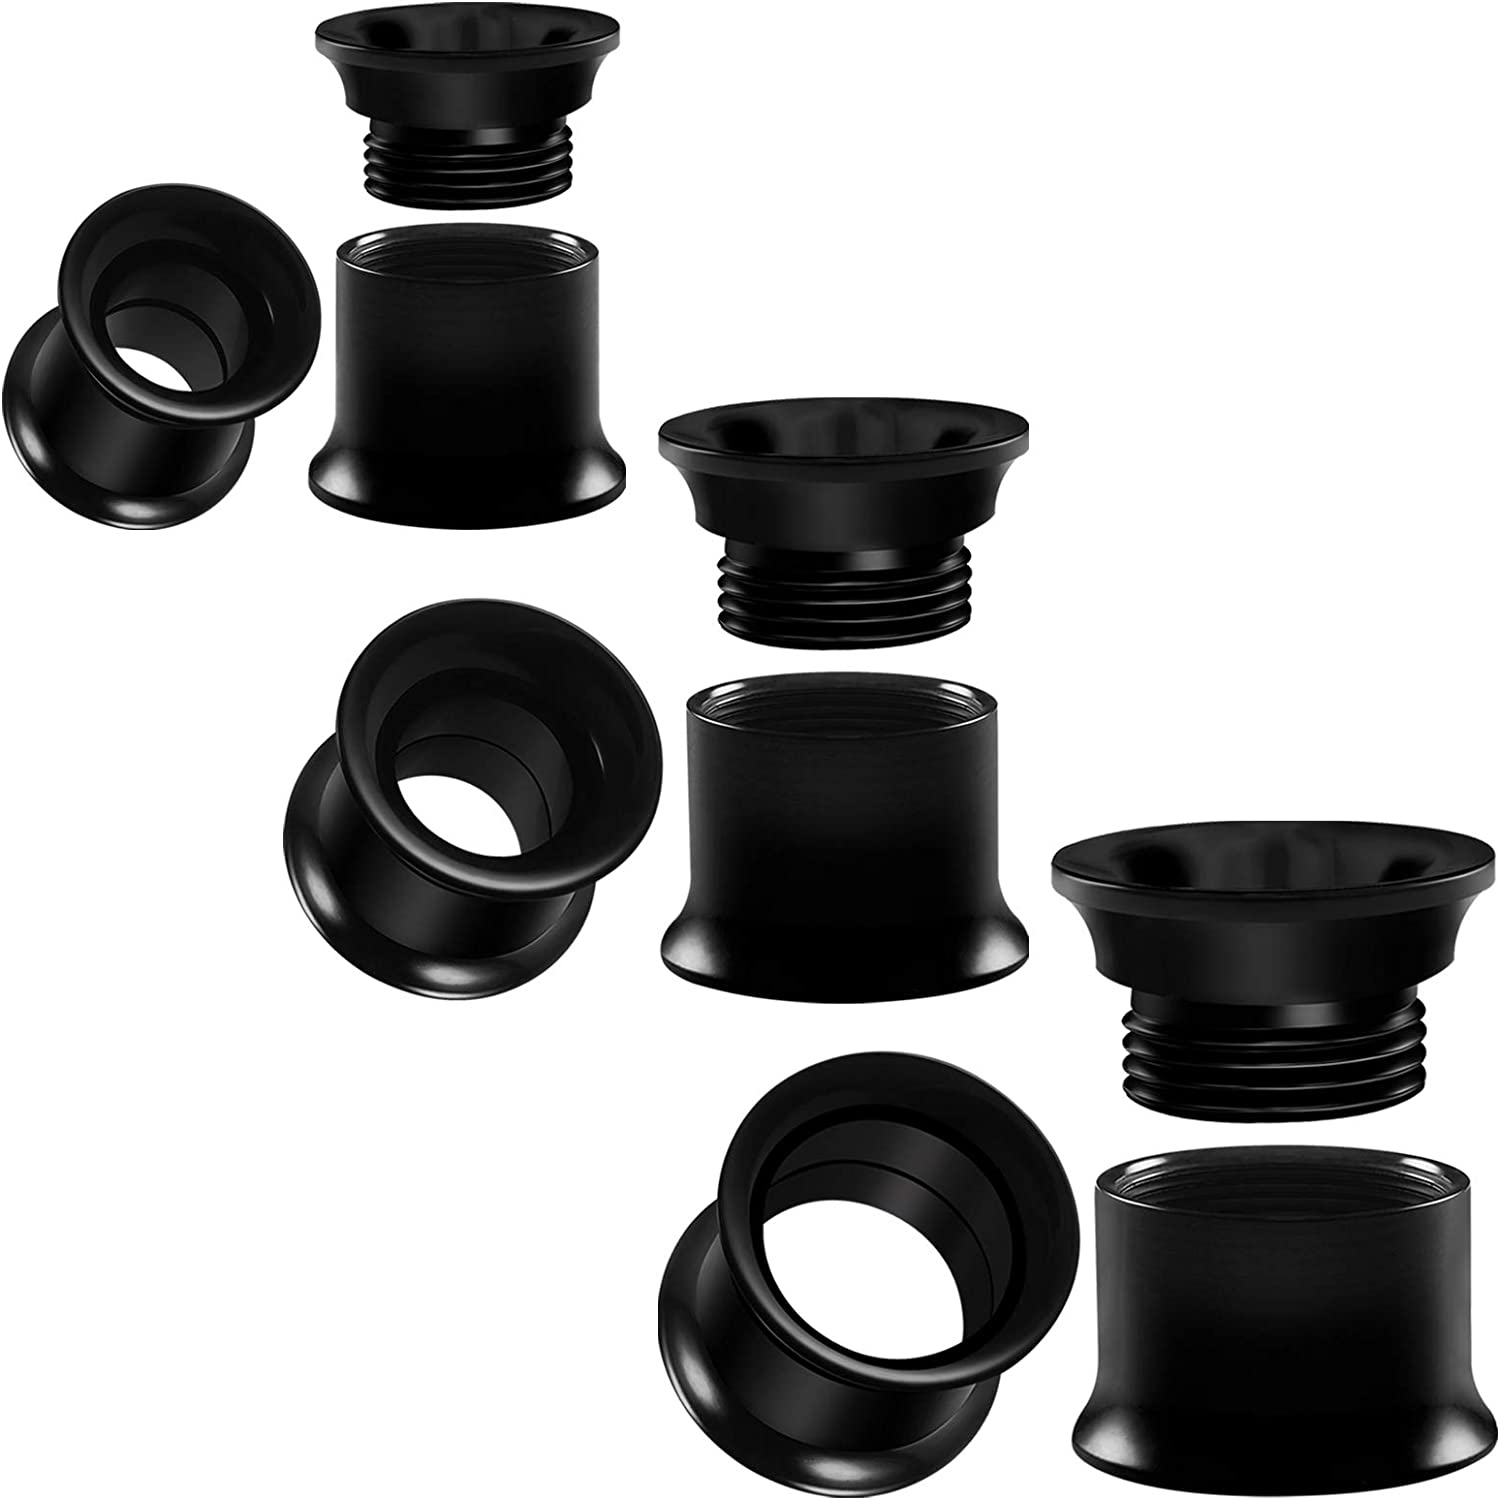 BIG GAUGES 3 Pairs Black Acrylic Double Flared Saddle Flesh Tunnel Screw-fit Piercing Jewelry Ear Stretcher Plugs Earring Lobe